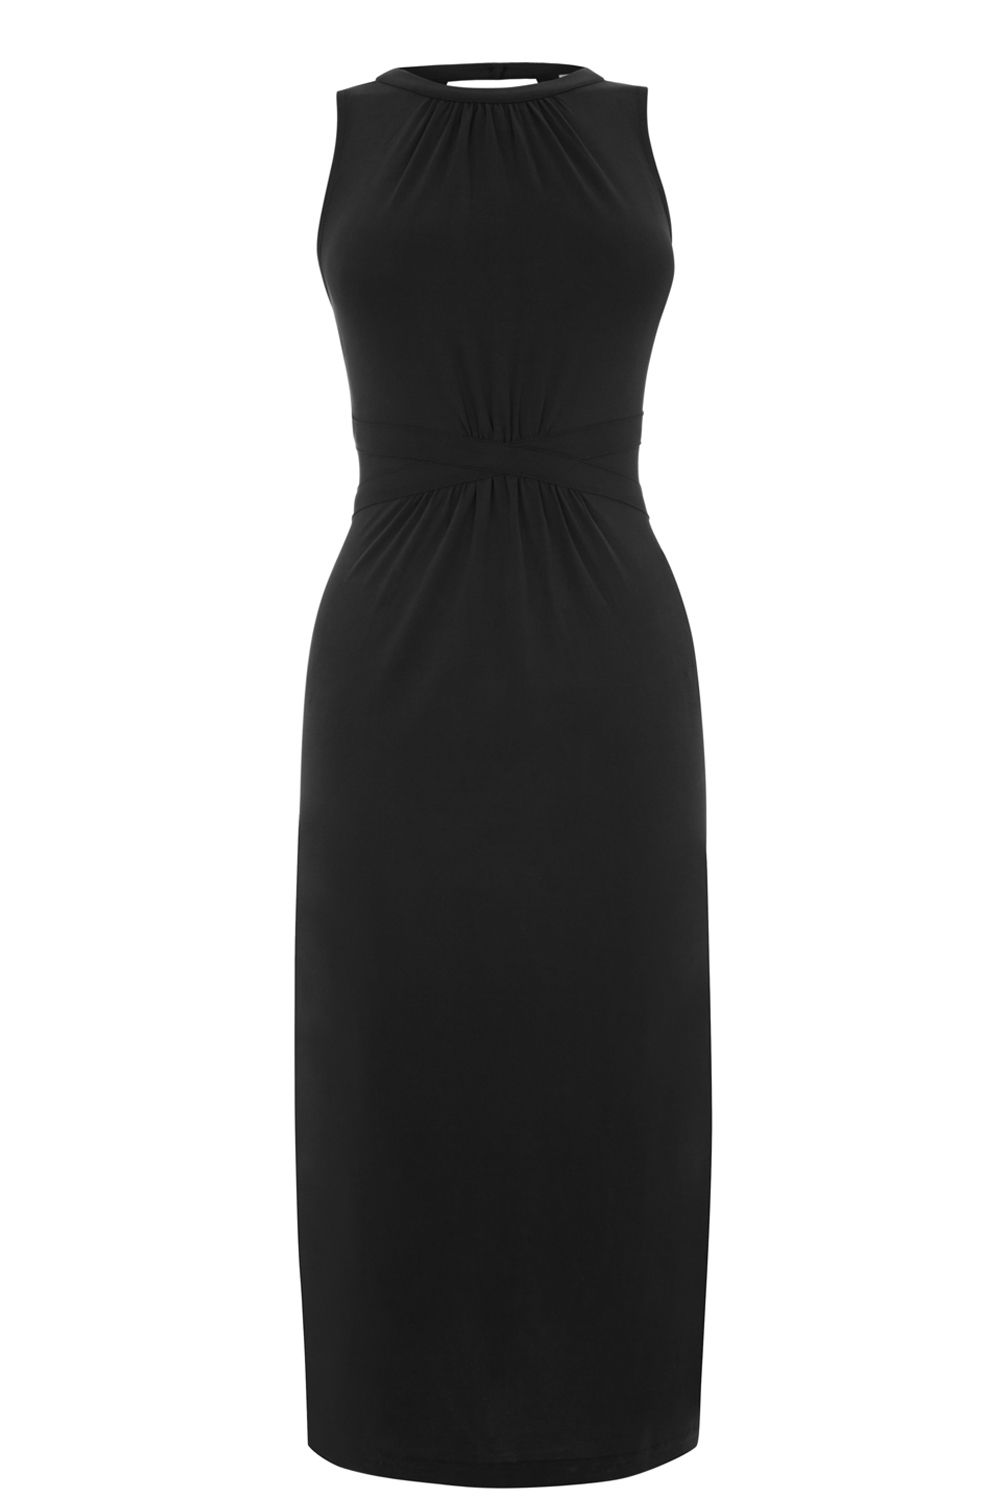 Oasis Grecian Midi Dress, Black